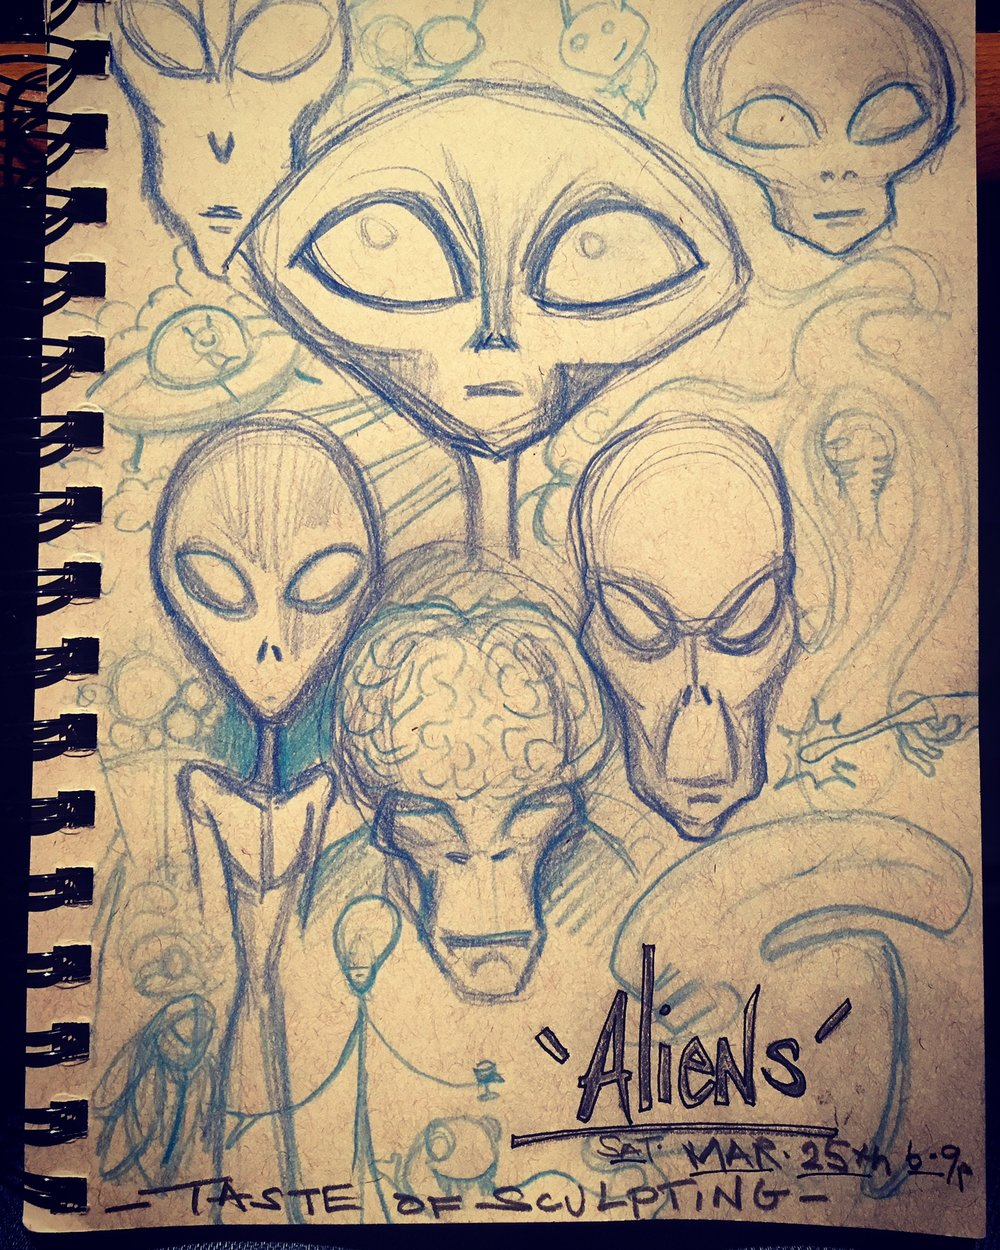 'Alien Edition' - 'Taste Of Sculpting' Workshop/ Wine Tasting  Saturday, March 25th 6-9pm   Get creative or bring back memories of the UFO you saw. Learn to sculpt what you may or may not have seen...While tasting 5 delicious wines.